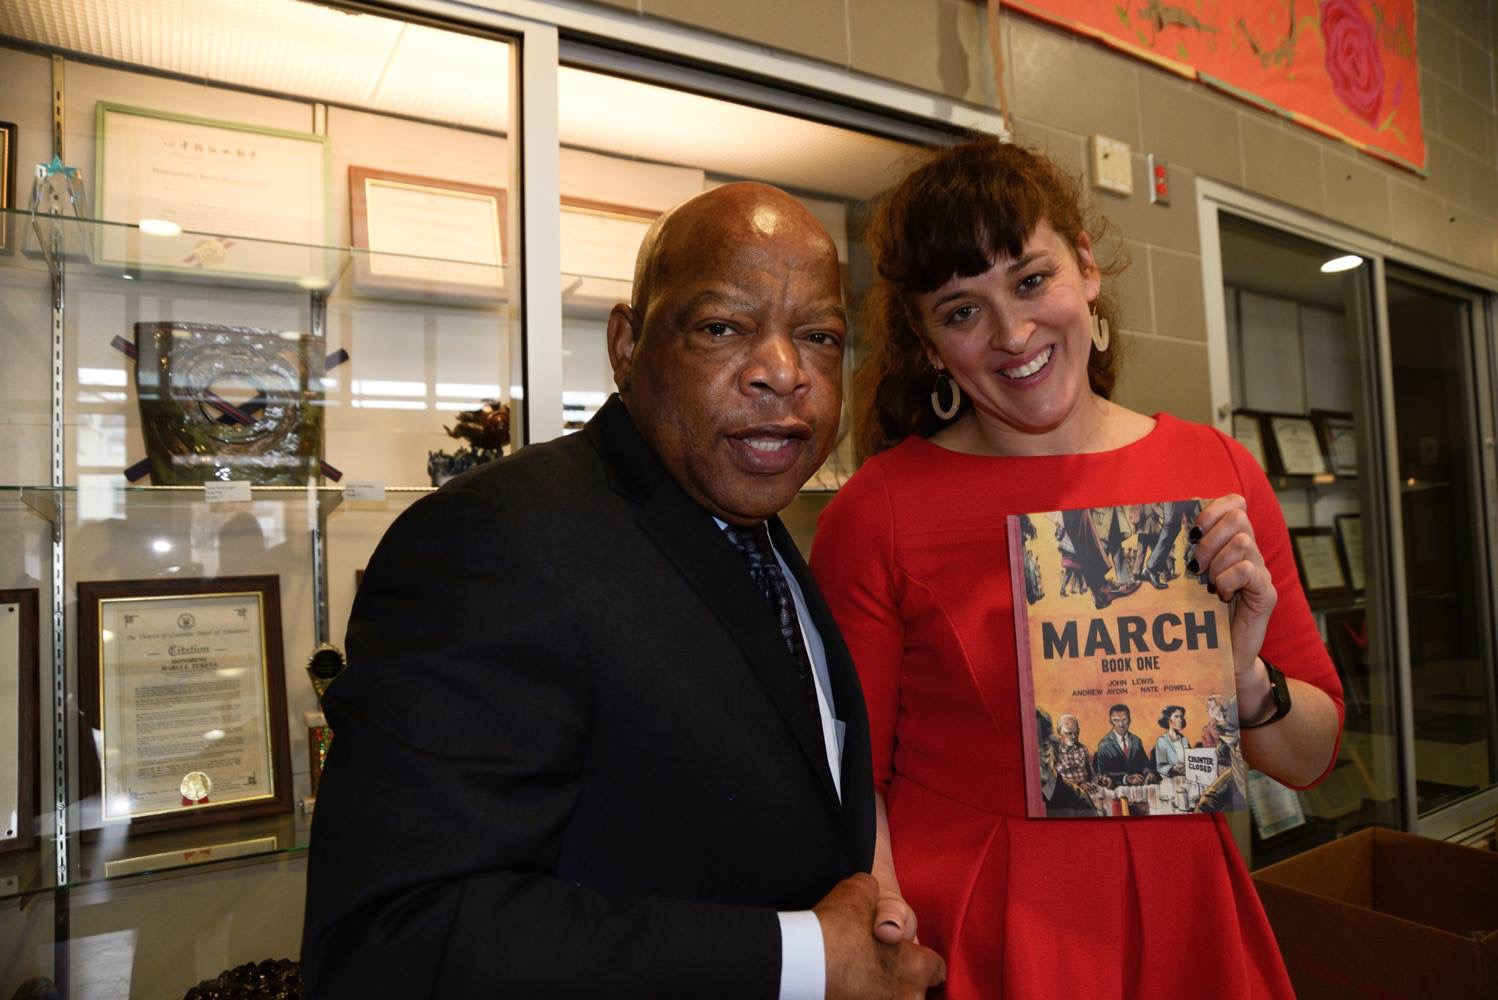 """Visual Storytelling and the Personal Narrative"" professional development event organized by Amanda Boggs for the art teachers of the DC Public School System. We were honored to host Congressman John Lewis who came and spoke about his graphic novel ""March""."